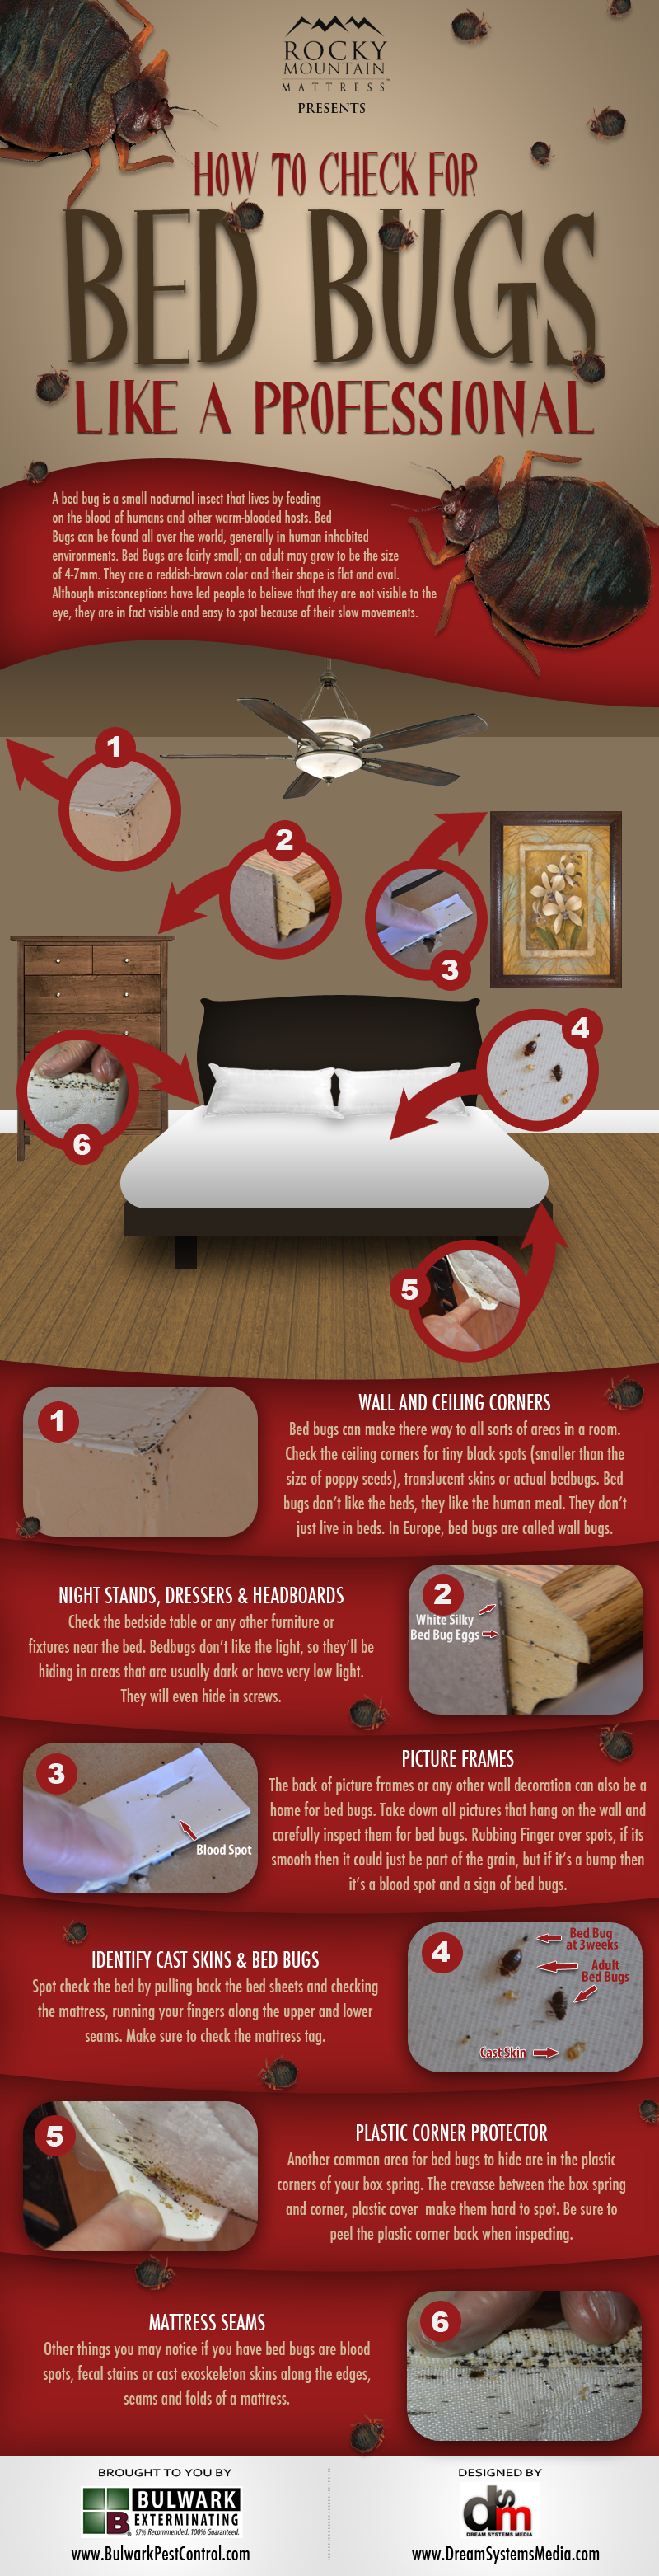 Pin By Thomas Ballantyne On Bugs And Stuff Rid Of Bed